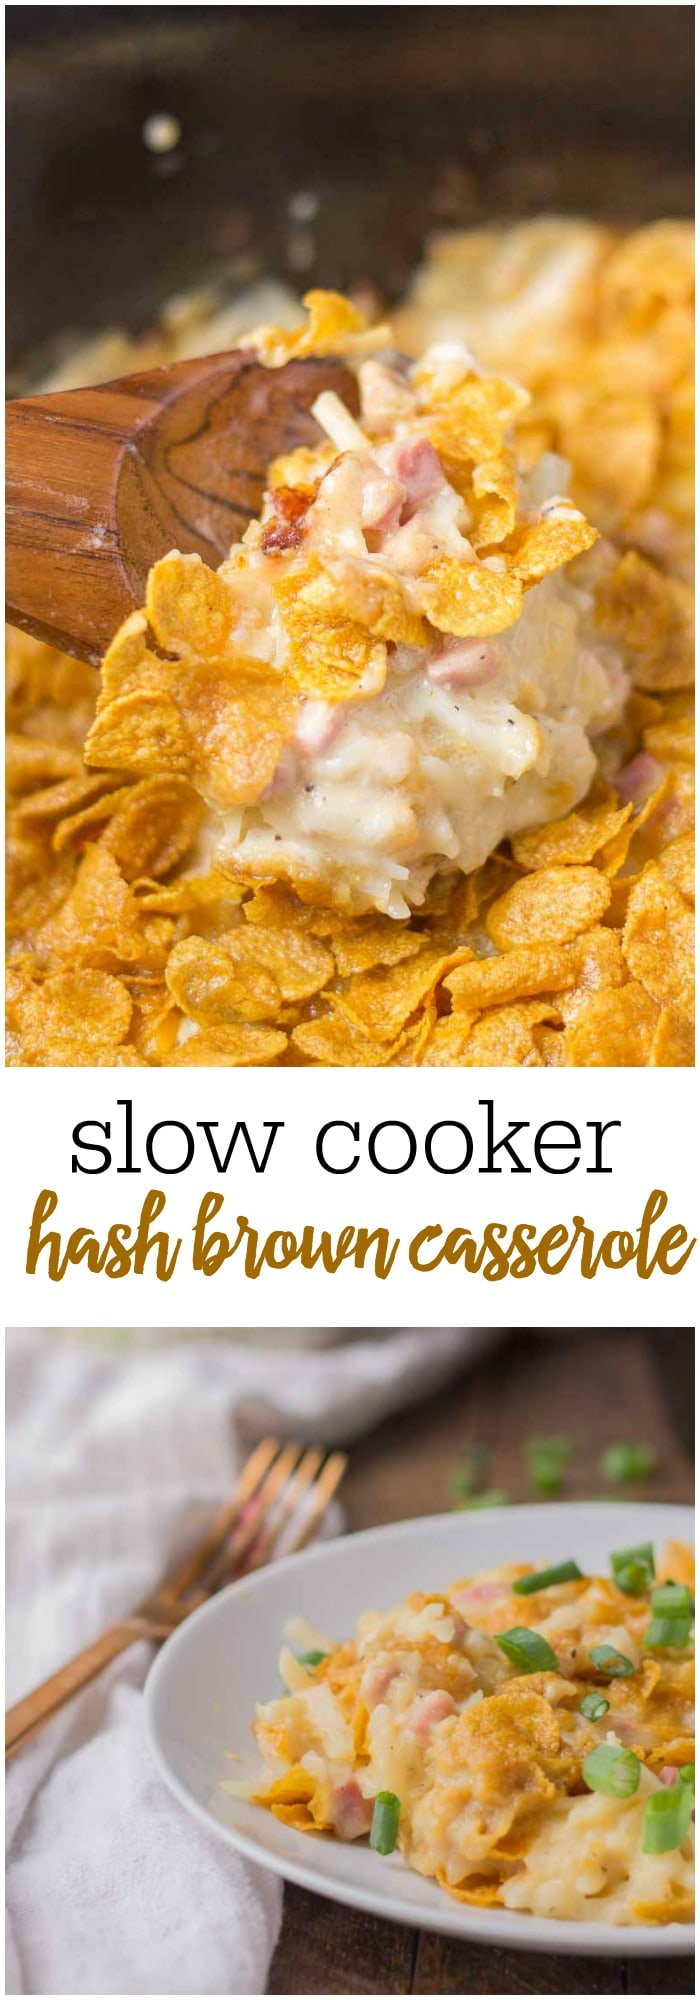 Potluck, Easter brunch or just your typical Sunday Breakfast, this Slow Cooker Hash Brown Casserole is easy, delicious and a family favorite!